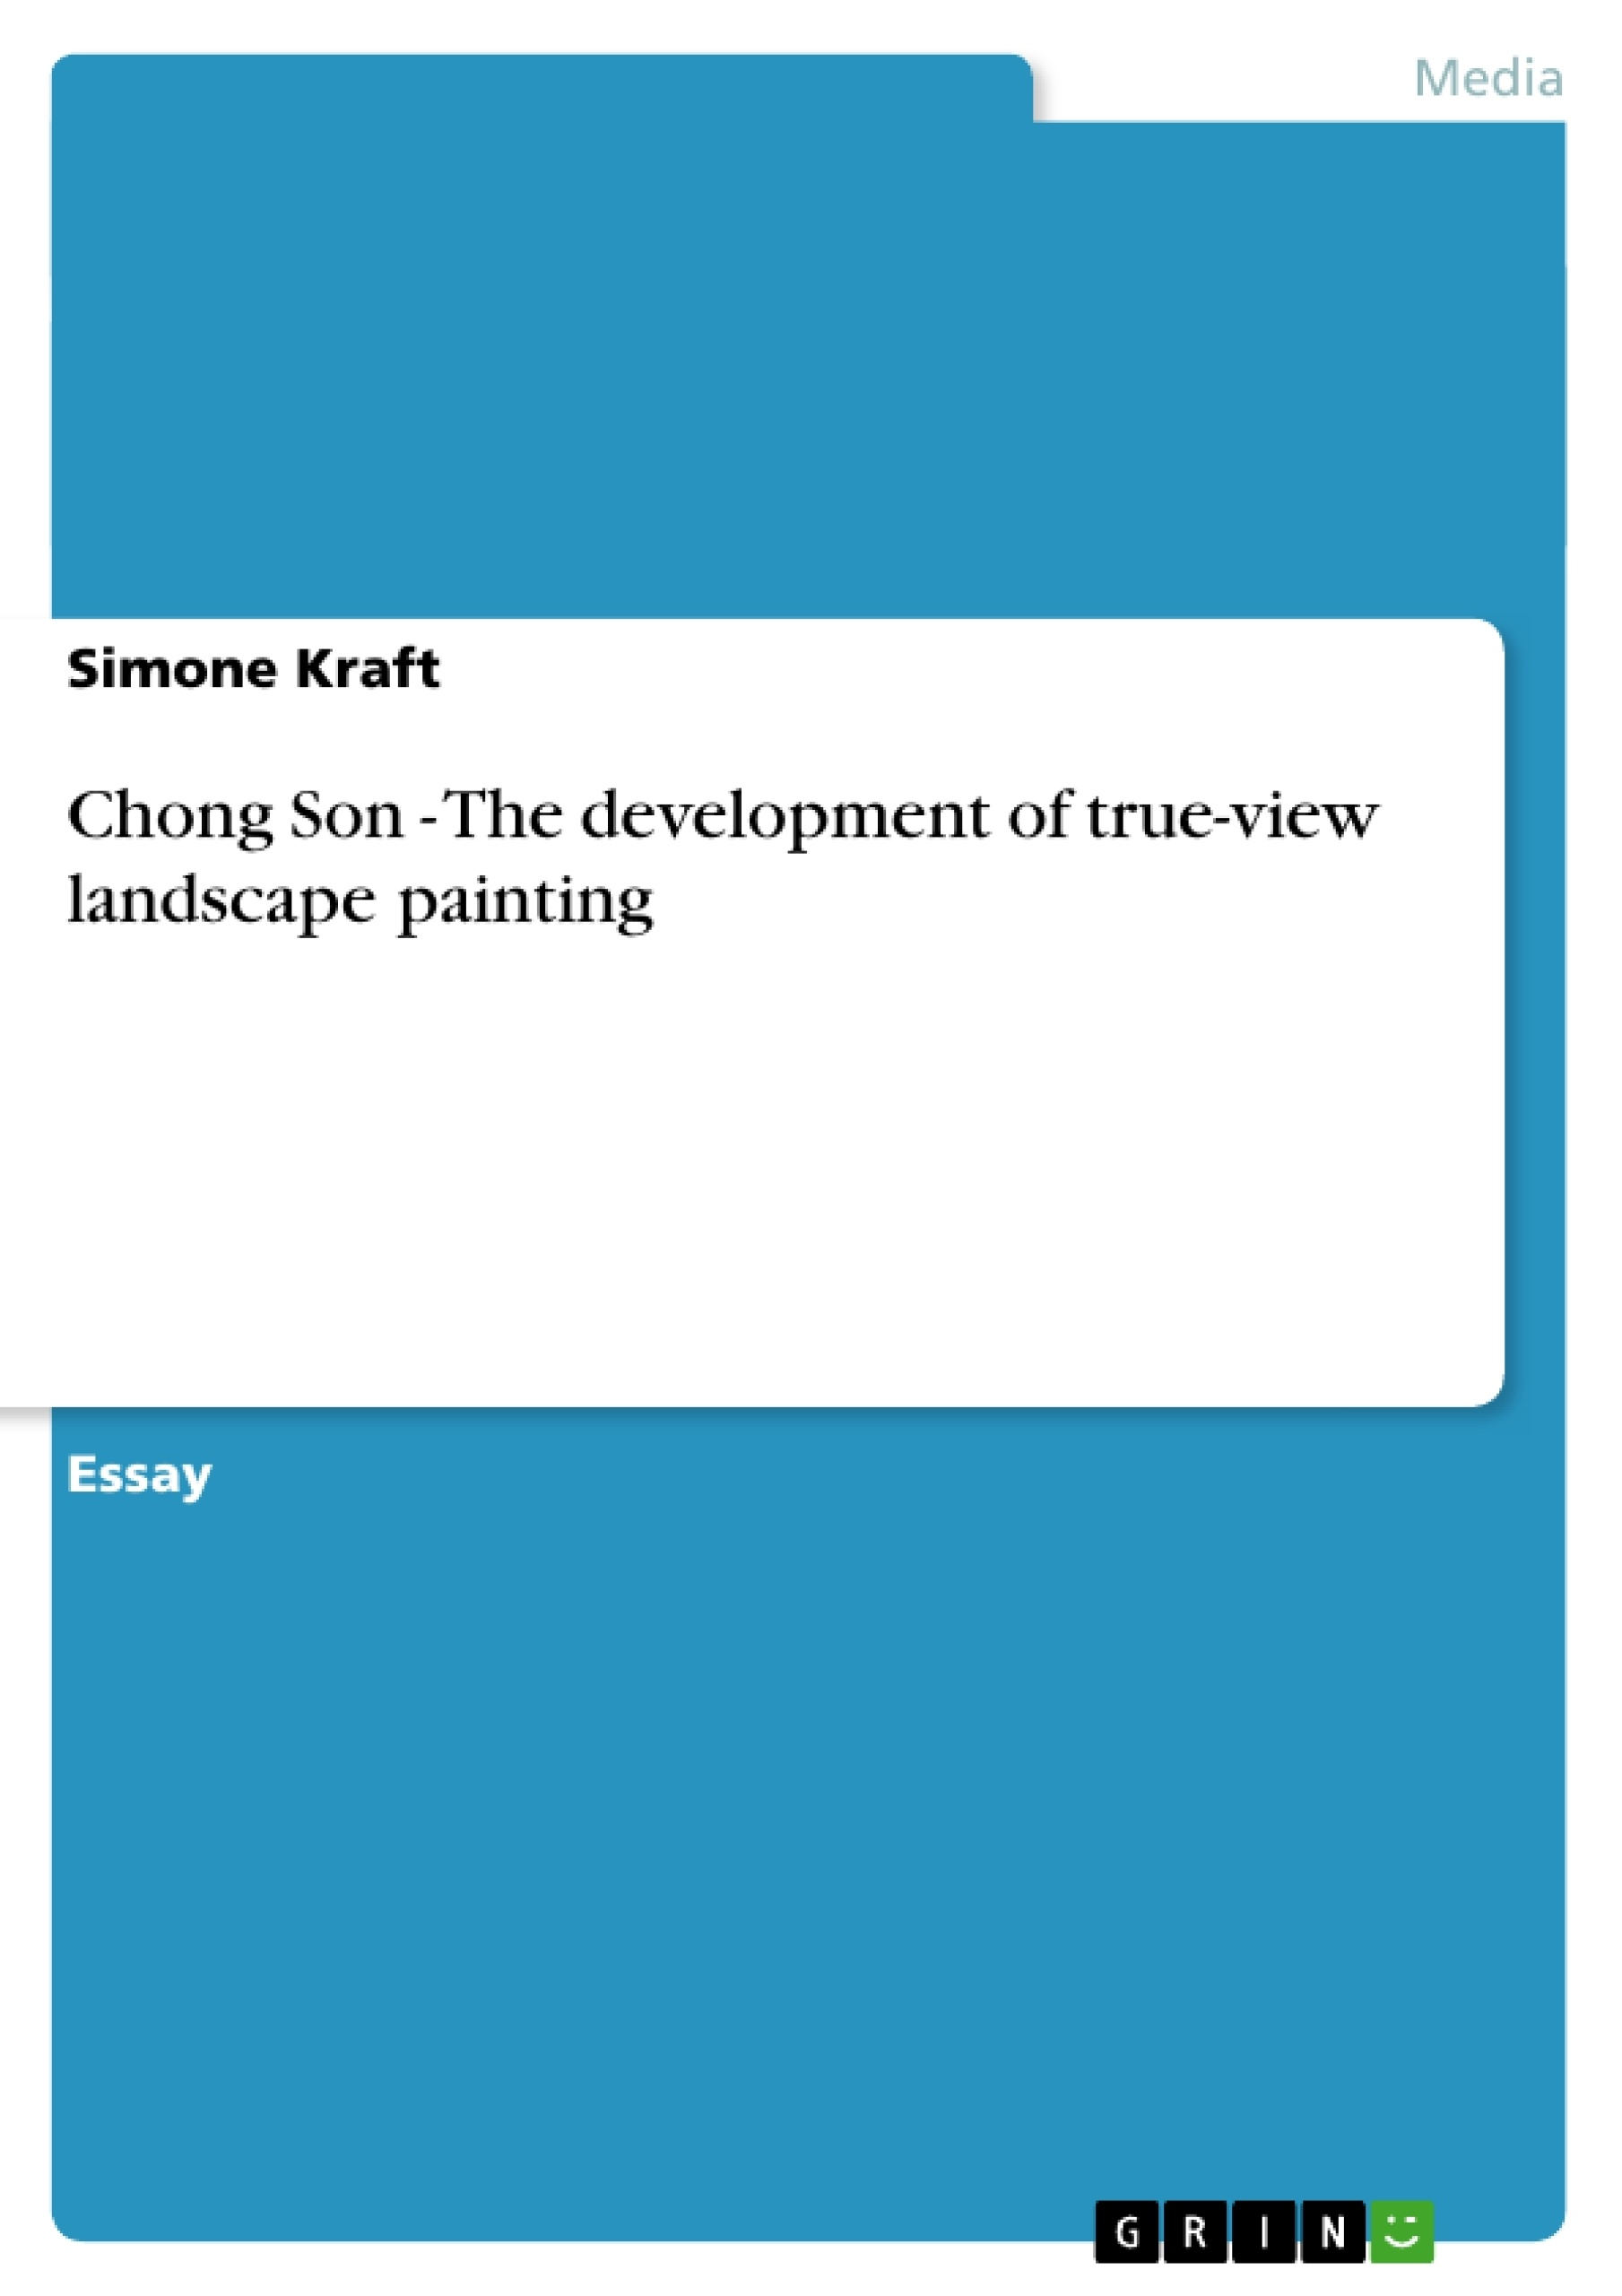 Title: Chong Son - The development of true-view landscape painting